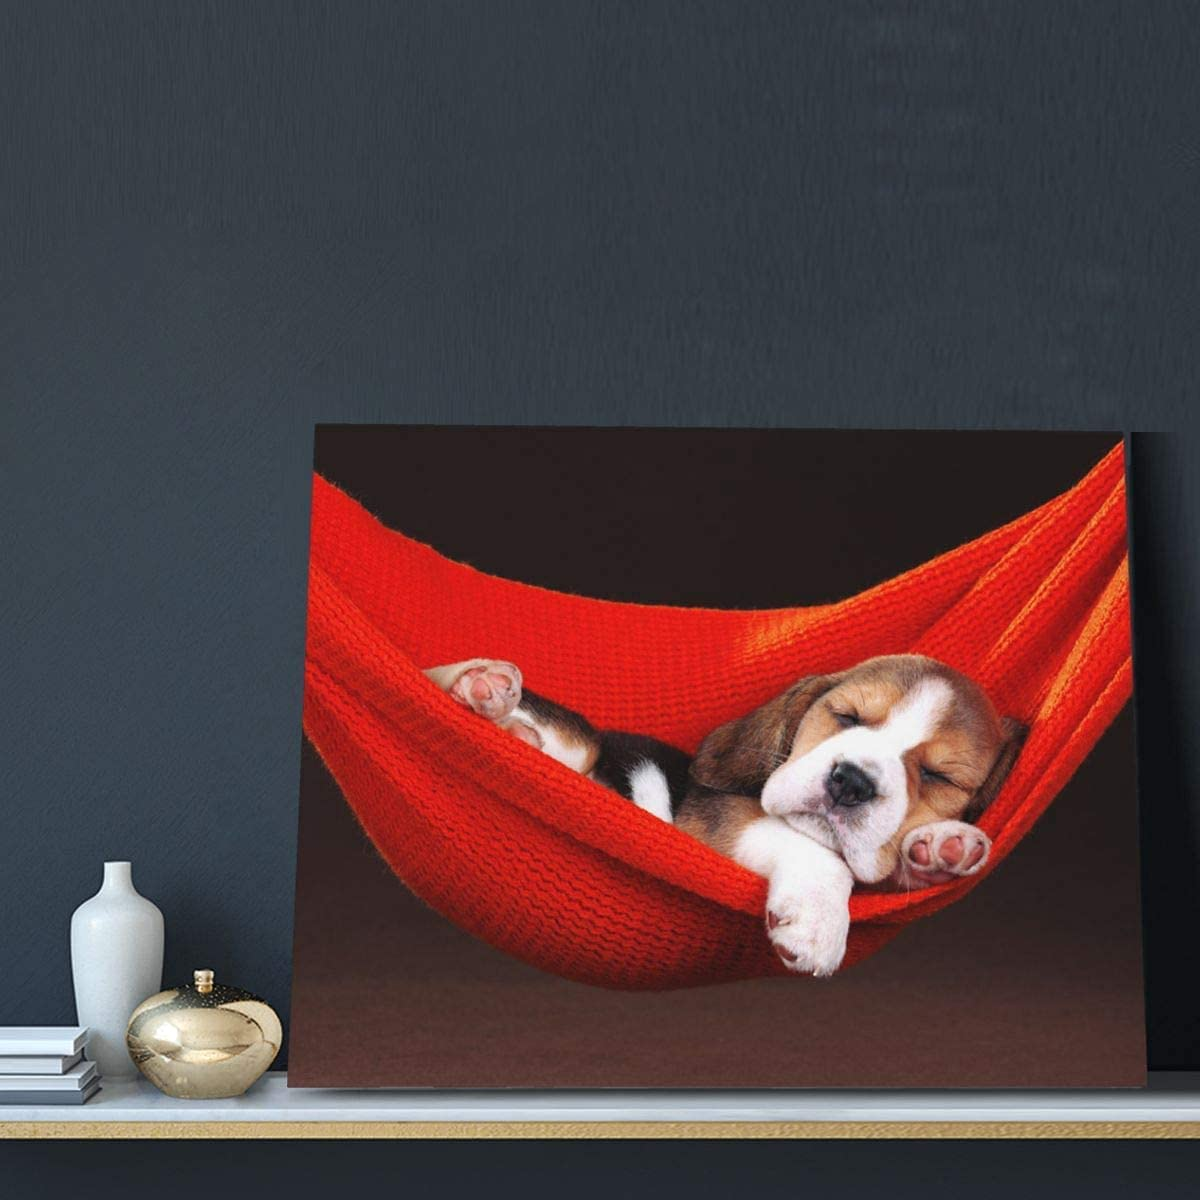 QEWA Funny Pets Sleeping Dog Canvas Popular trend rank shop is the lowest price challenge Paintings Mod Décor Wall Art